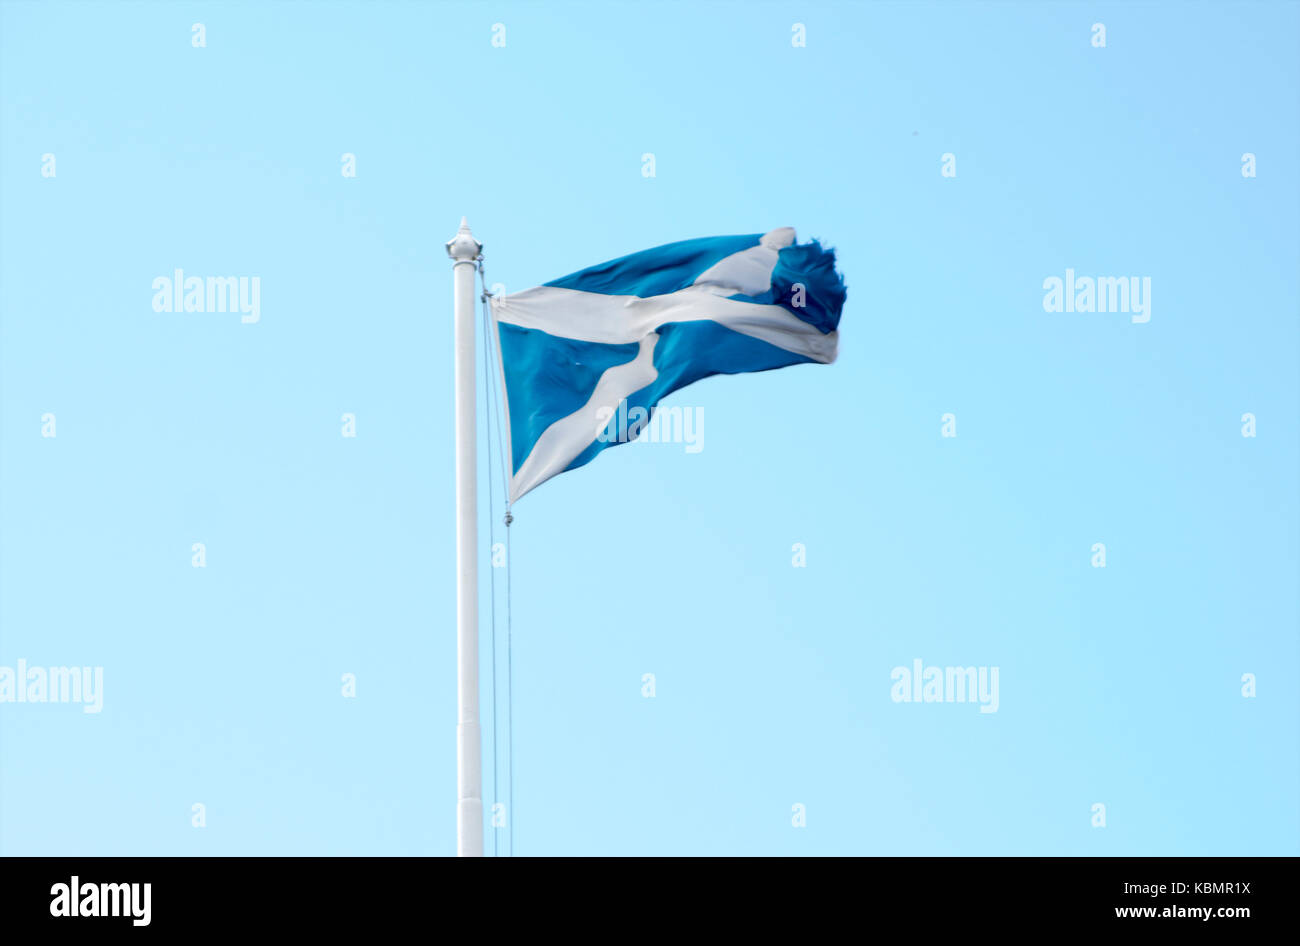 Scottish flag (Saltire) on a flagpole waving in the wind - Stock Image